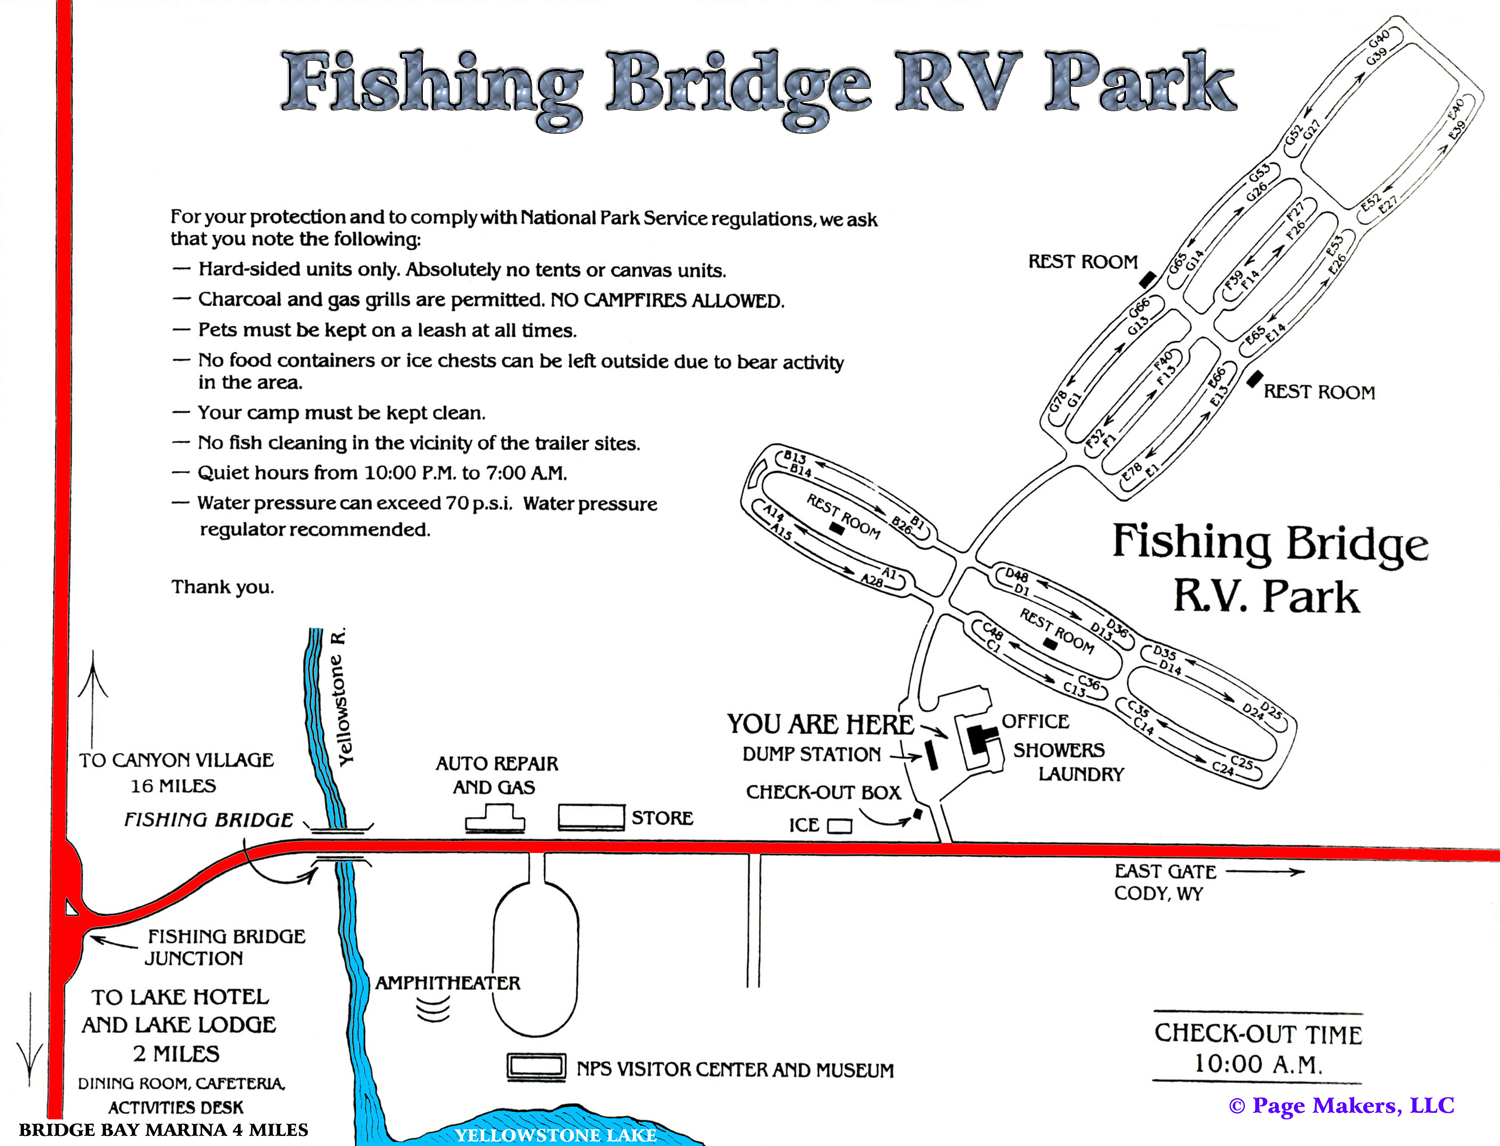 Bridge RV Campground Information, Map, Pictures and Video ... on yellowstone deer, yellowstone fishing, yellowstone road, yellowstone in september, yellowstone trees, yellowstone forest, yellowstone park history, yellowstone rocks, yellowstone campground rates, yellowstone highway, yellowstone springs, yellowstone bridge bay campground, yellowstone hiking, yellowstone grand canyon, yellowstone trout, yellowstone lewis lake campground, yellowstone elevation maps, yellowstone destruction zone, yellowstone water, yellowstone in october,